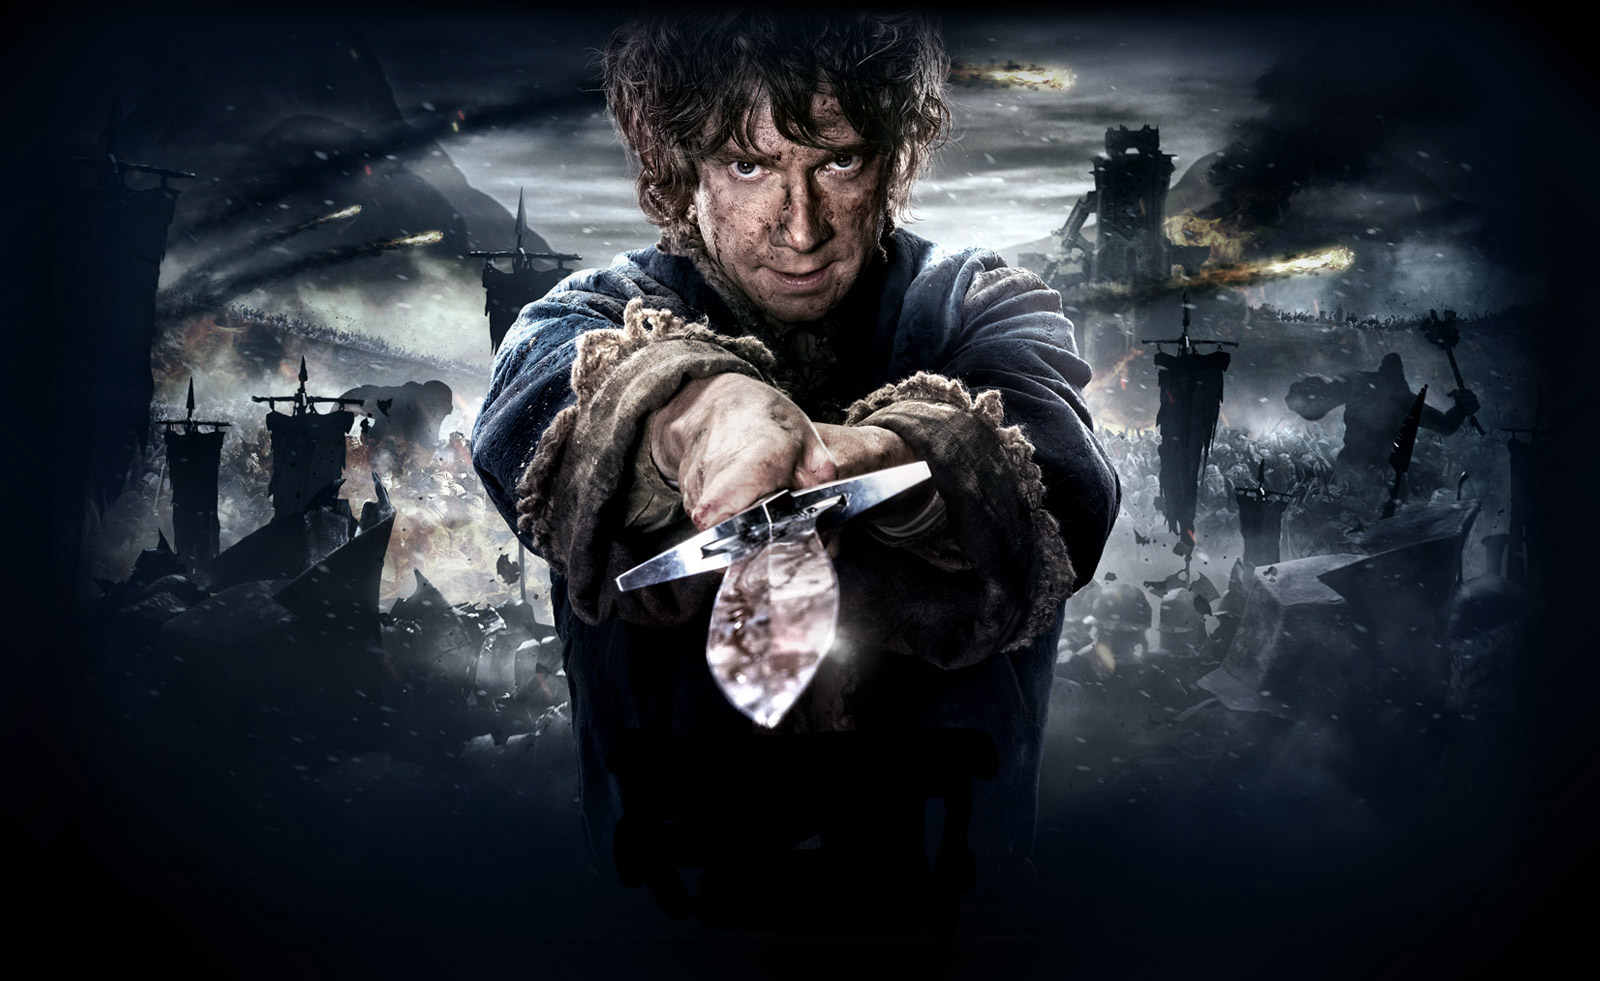 """There and Back Again: The Bumpy Ride of """"The Hobbit ..."""